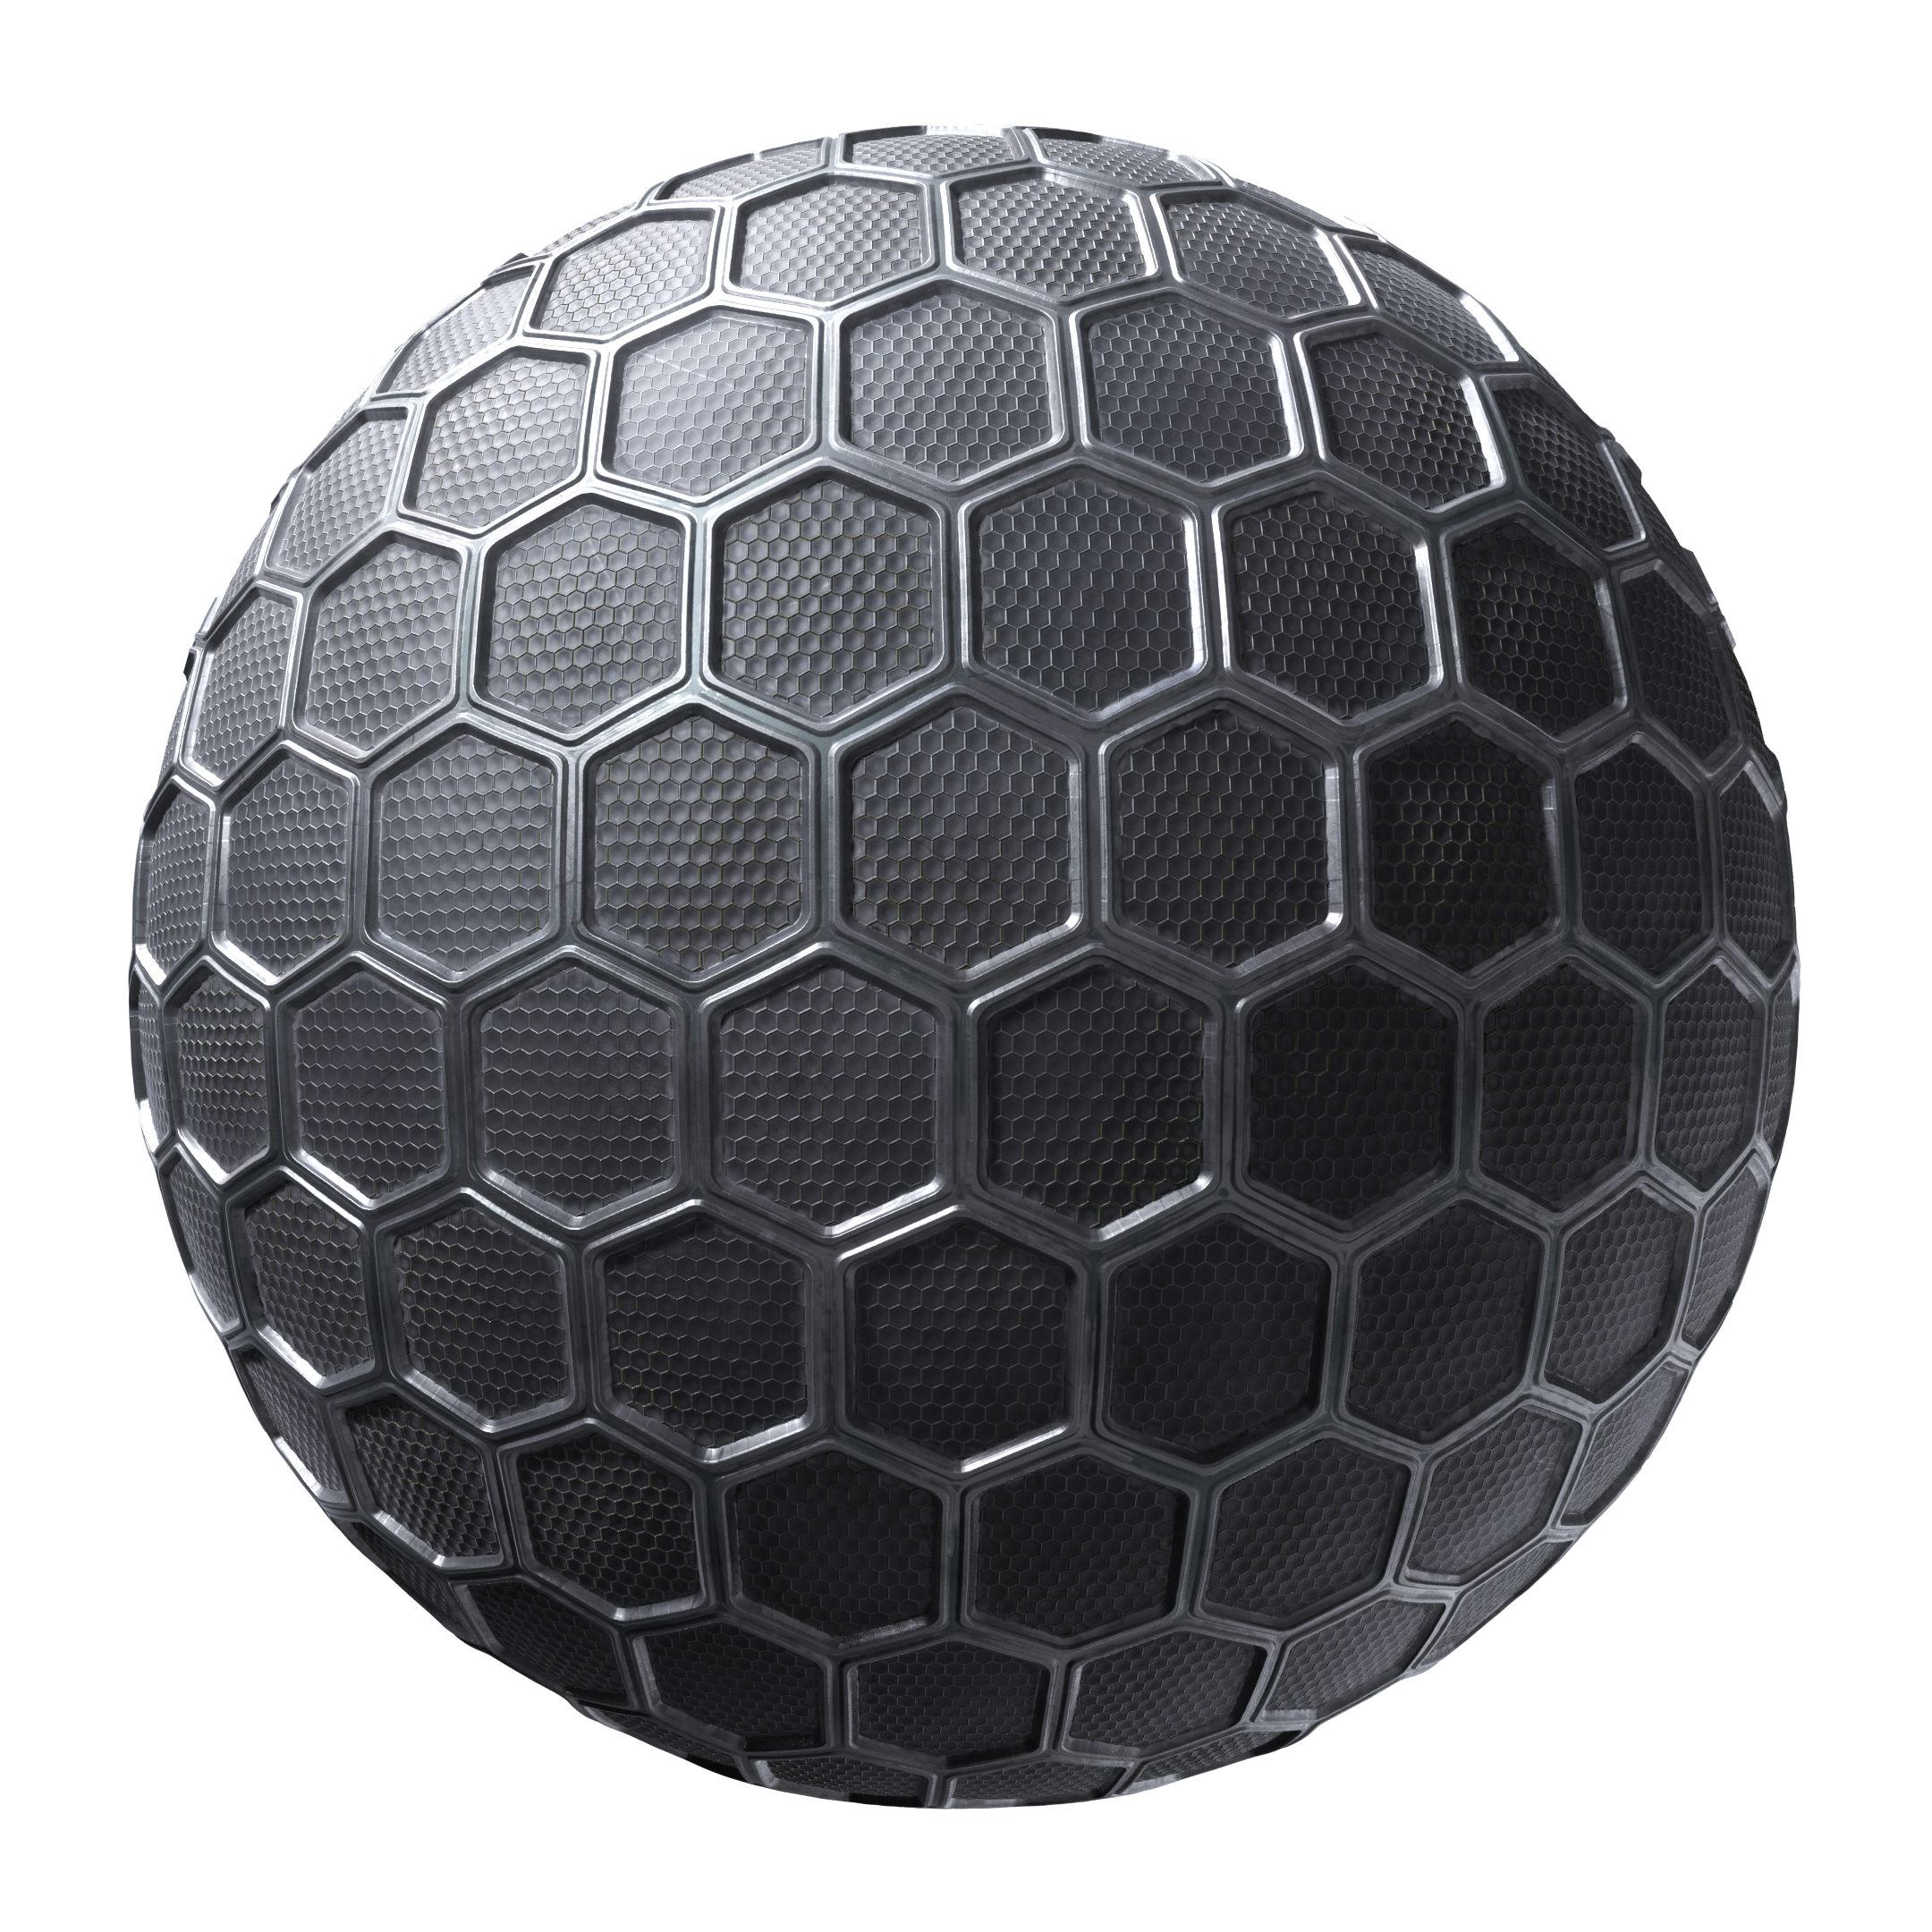 Tcom_Scifi_Hexagon_thumb1.png